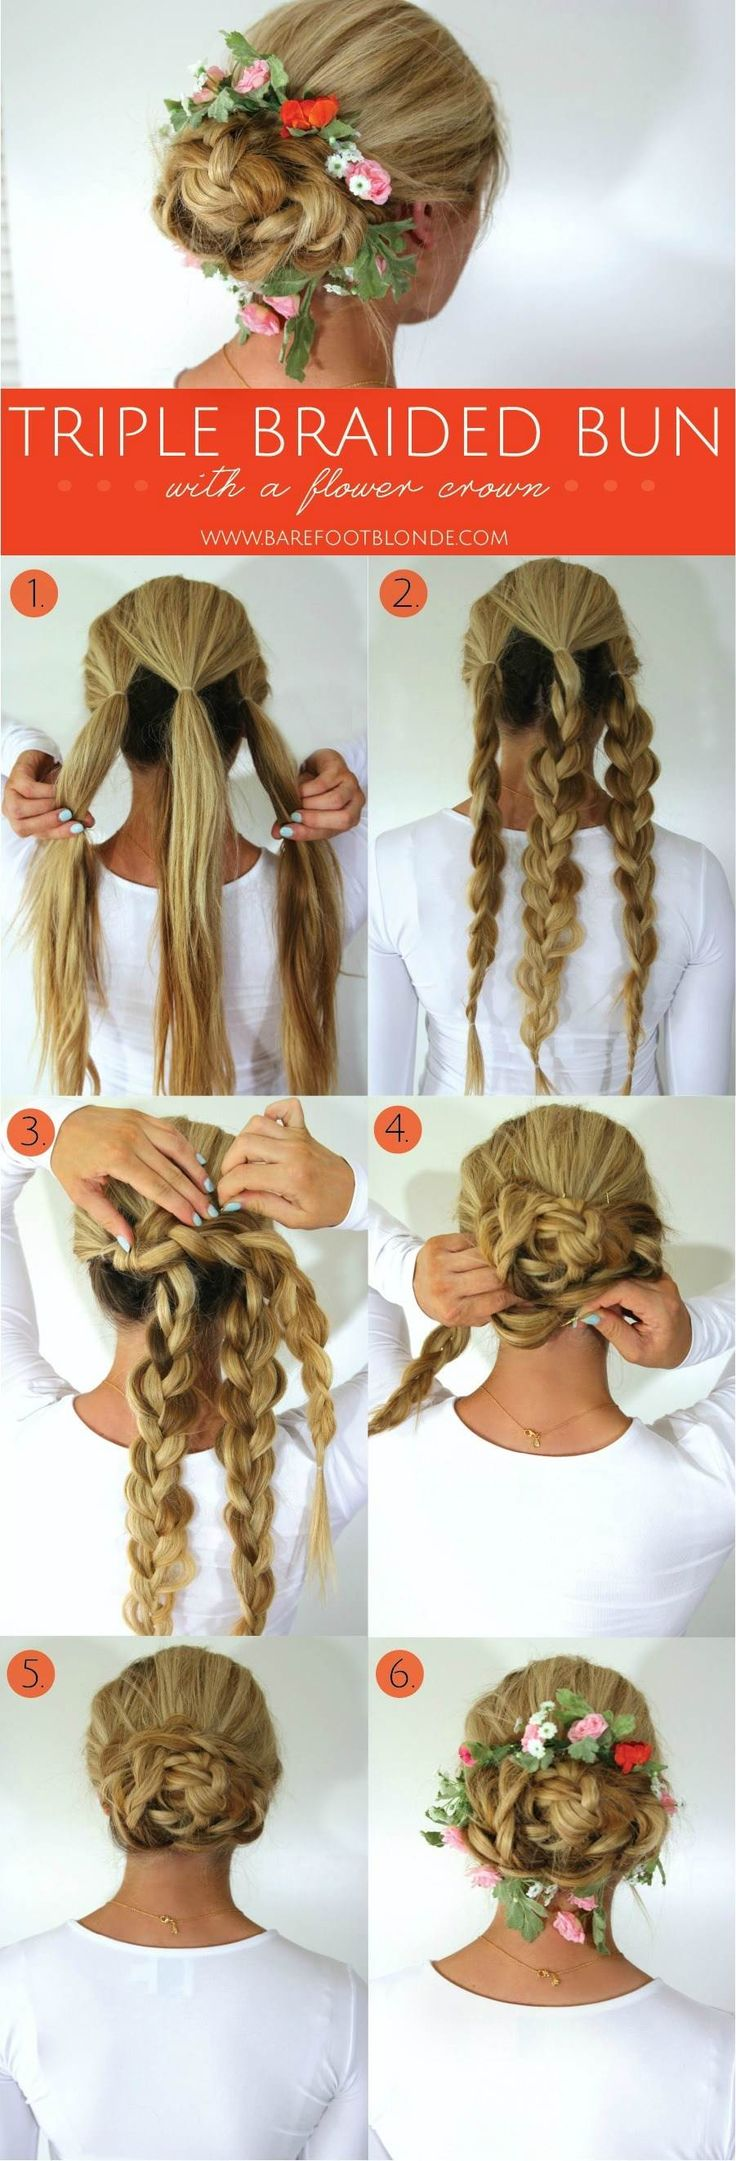 Beautiful Braided Hairstyle.